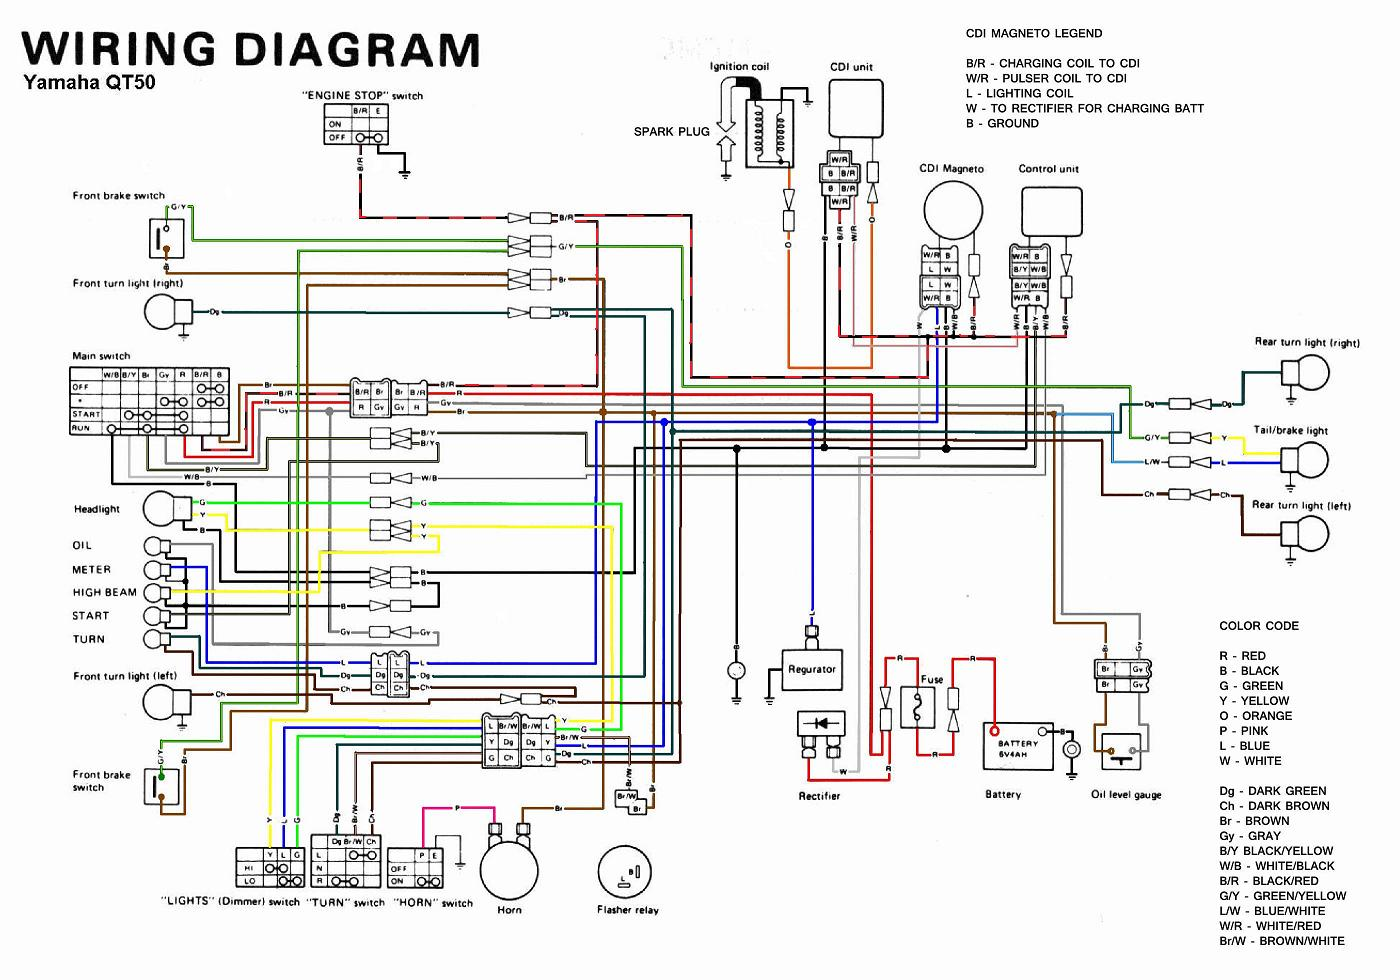 1972 xs650 wiring diagram cb750 wiring diagram wiring Honda 20 HPV Twin Wiring-Diagram Simple Wiring Diagram 1974 Honda CB360